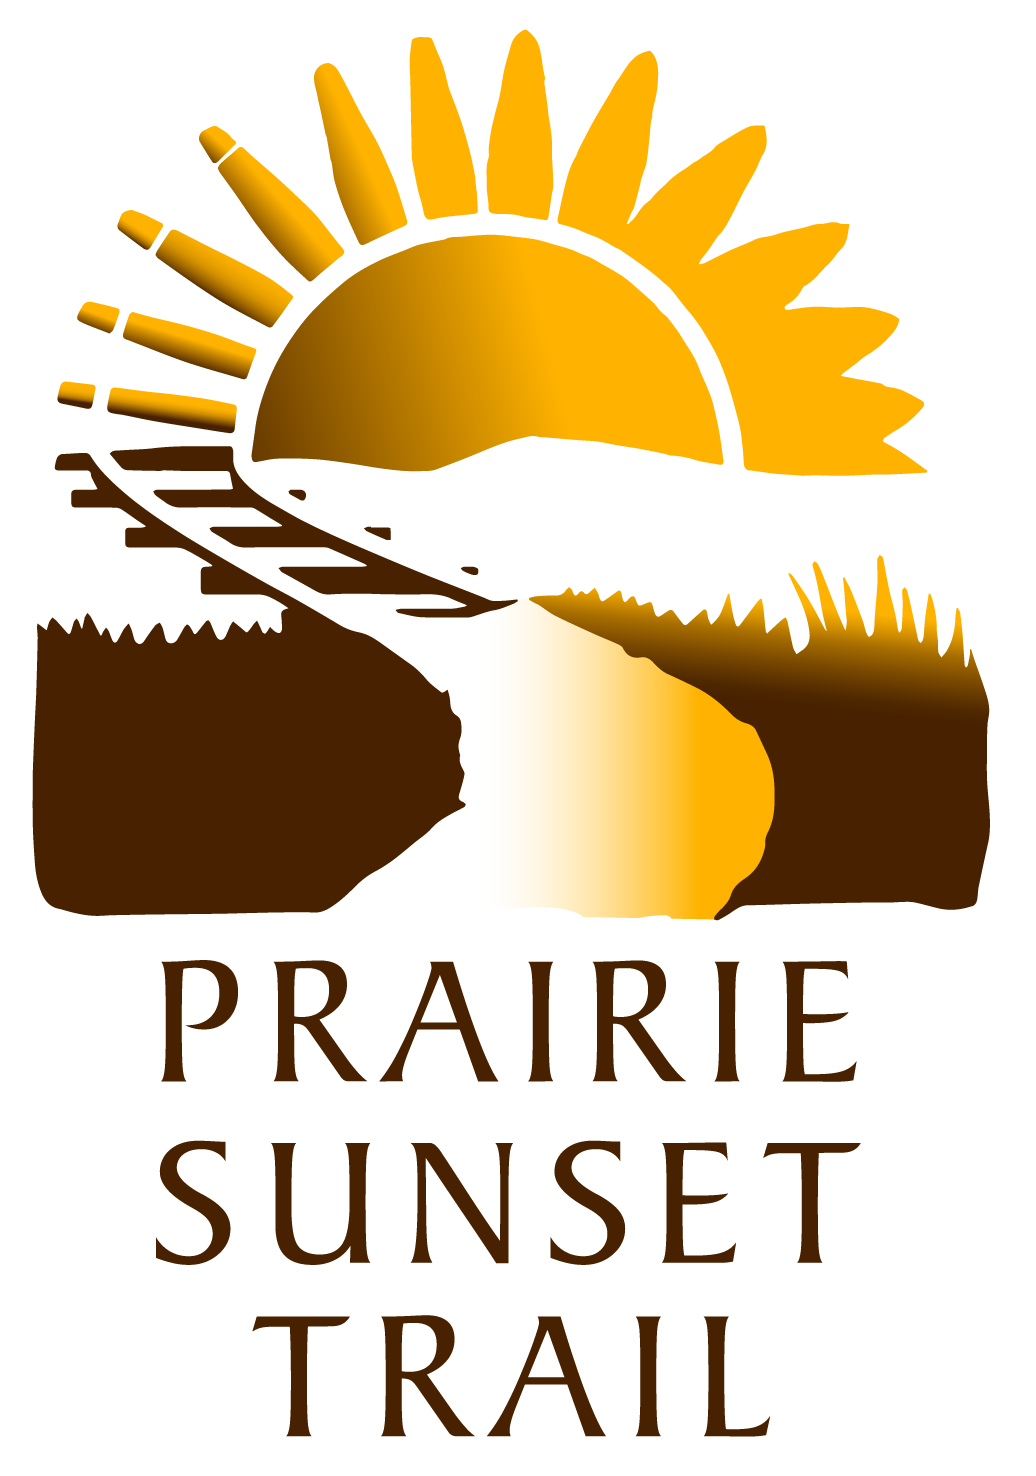 Walking trail clean up clipart transparent Prairie Sunset Trail | Public trail in central Kansas for ... transparent